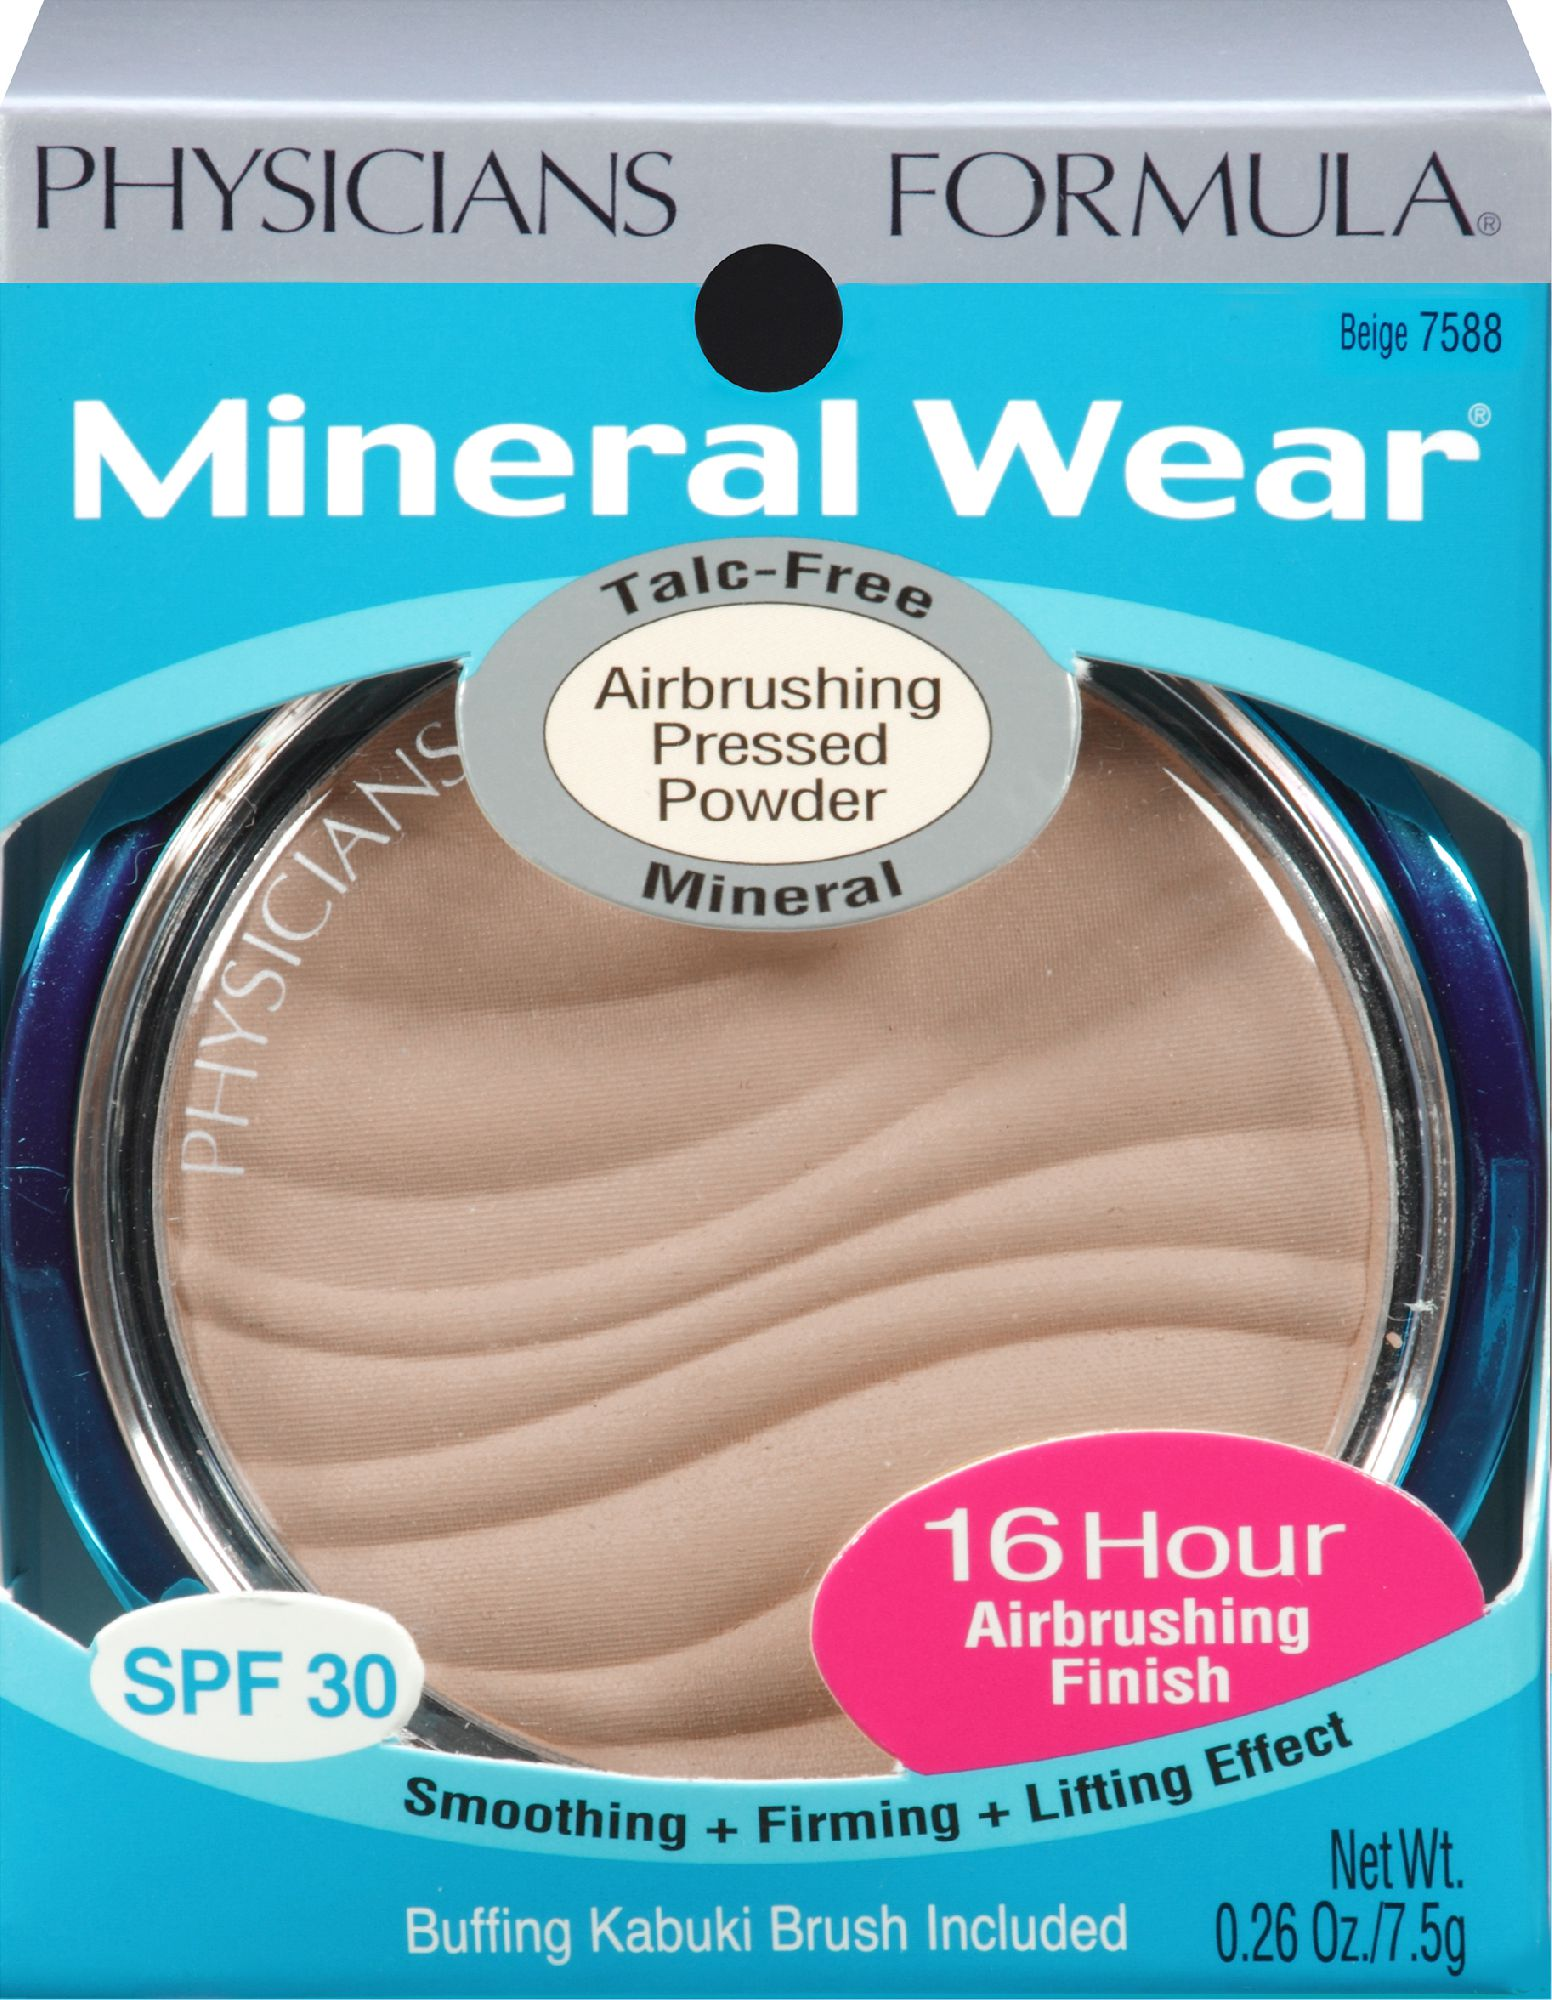 Puder Physicians Formula Mineral Airbrushing Powder prasowany puder mineralny do twarzy Beige 7.5g